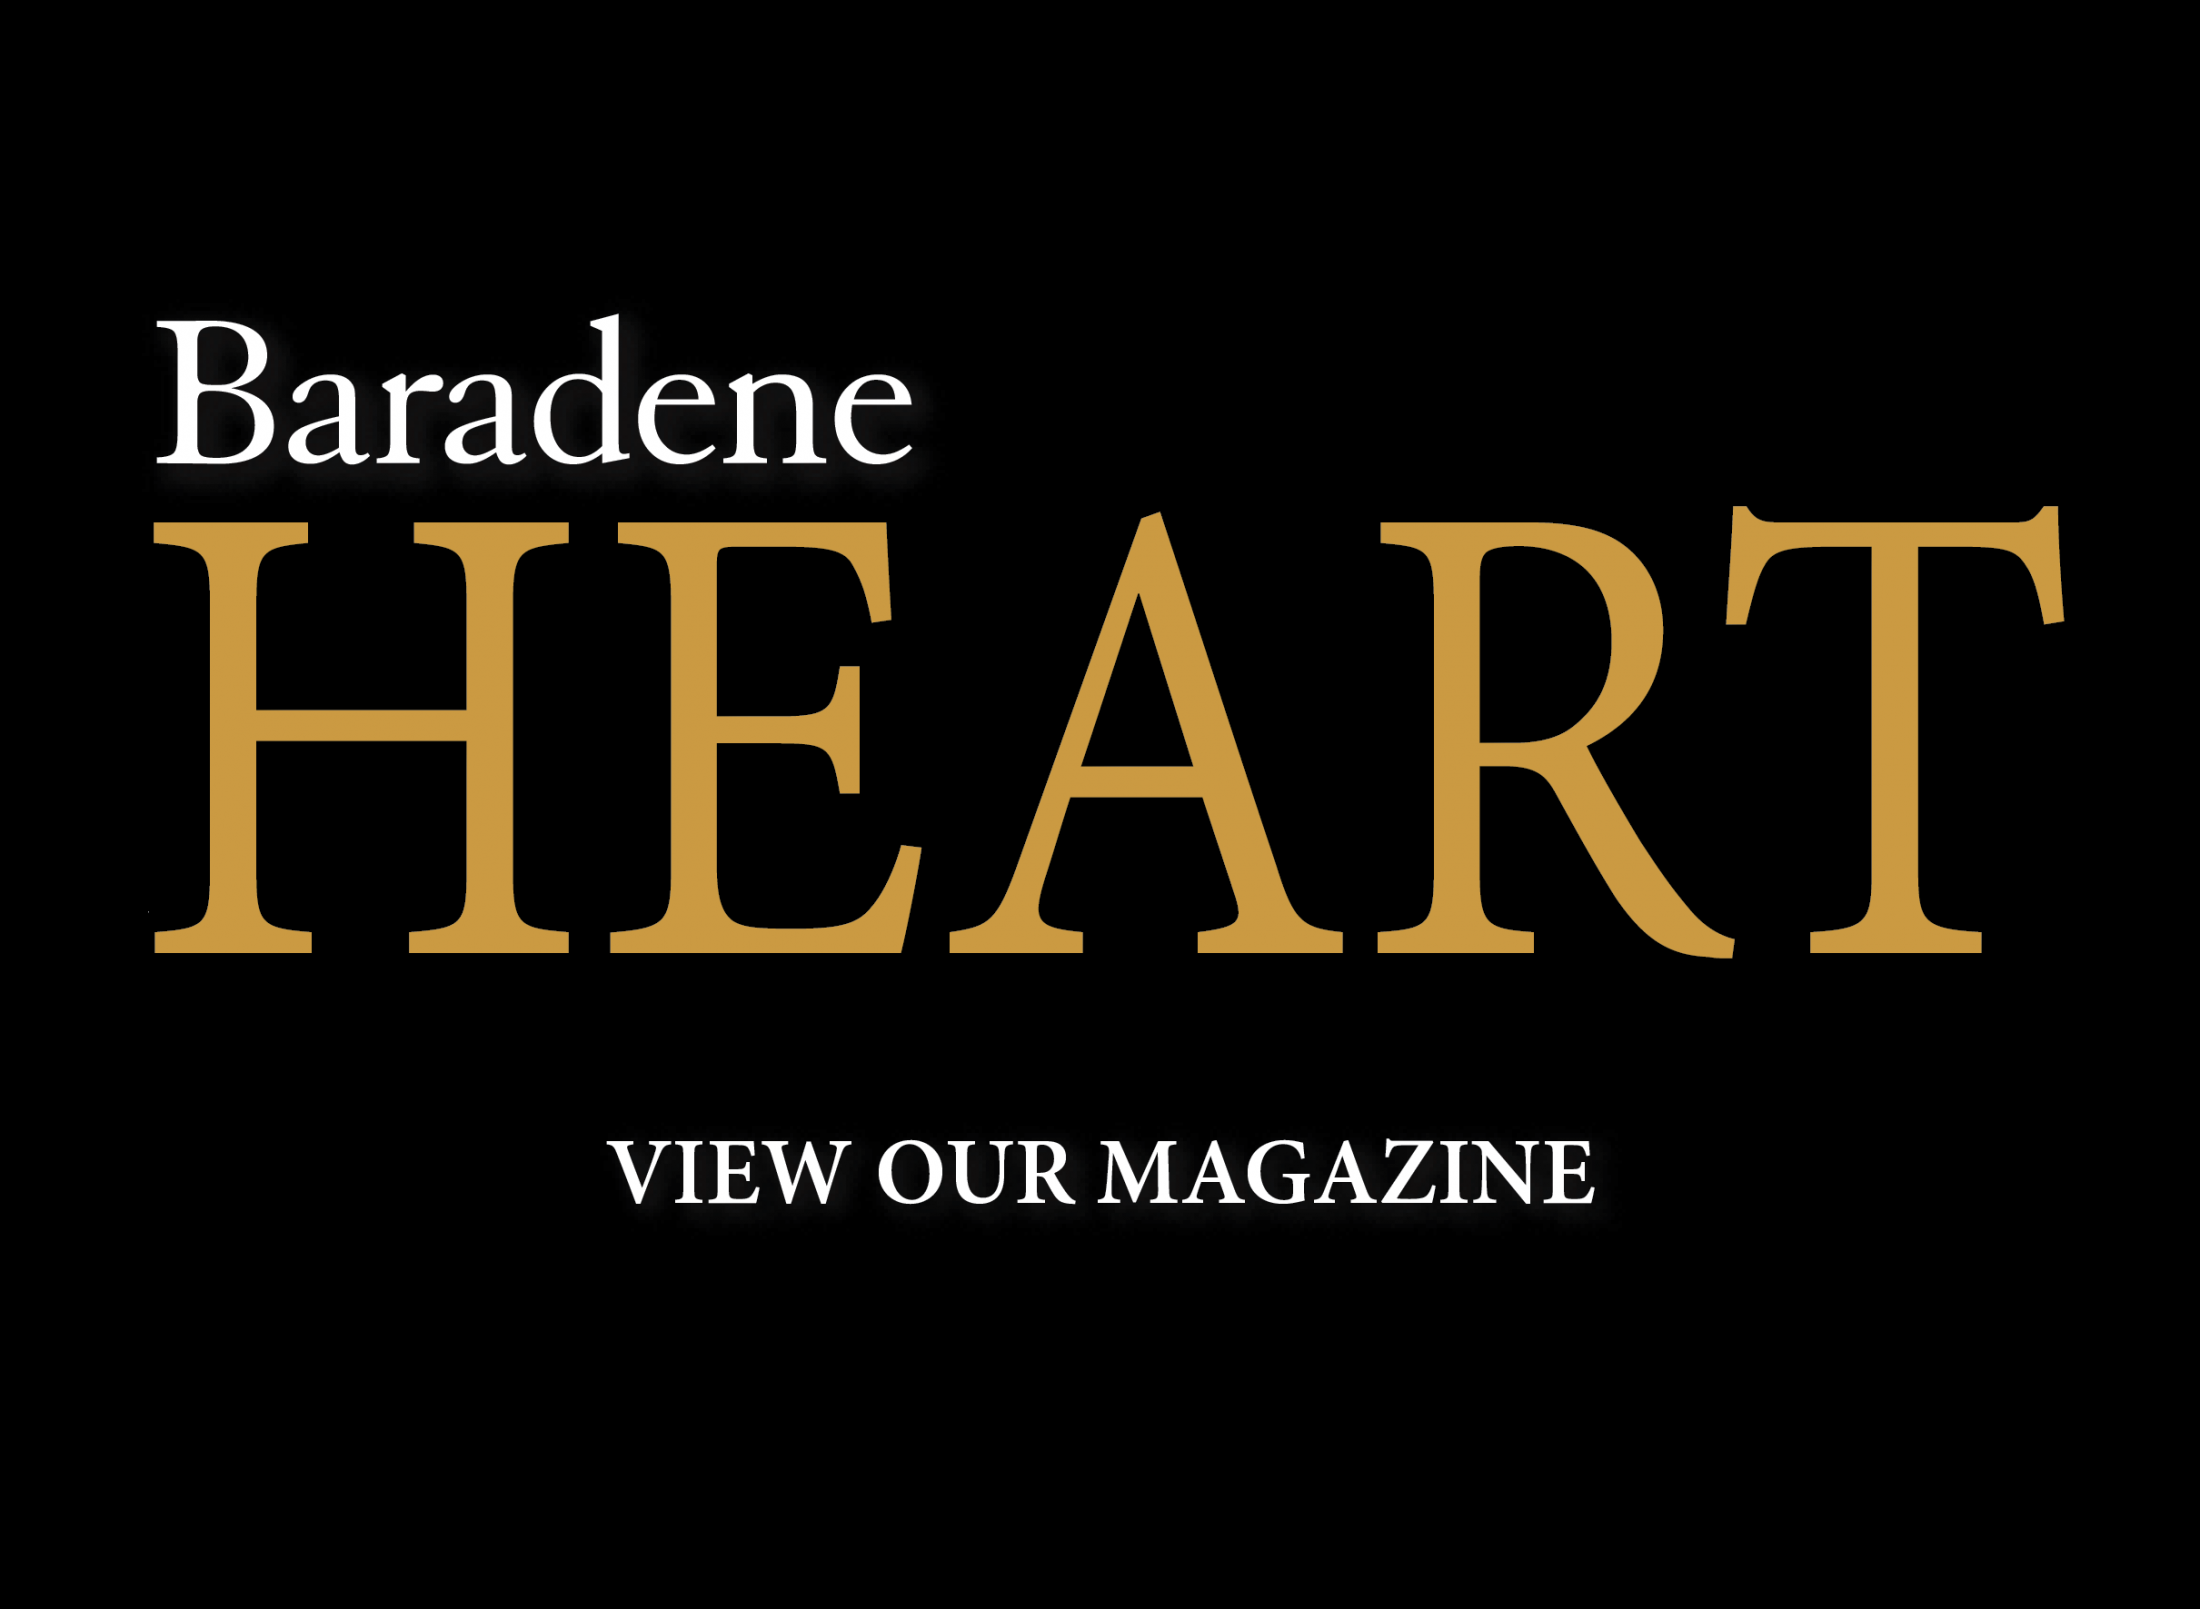 October issue of Baradene Heart Magazine out now